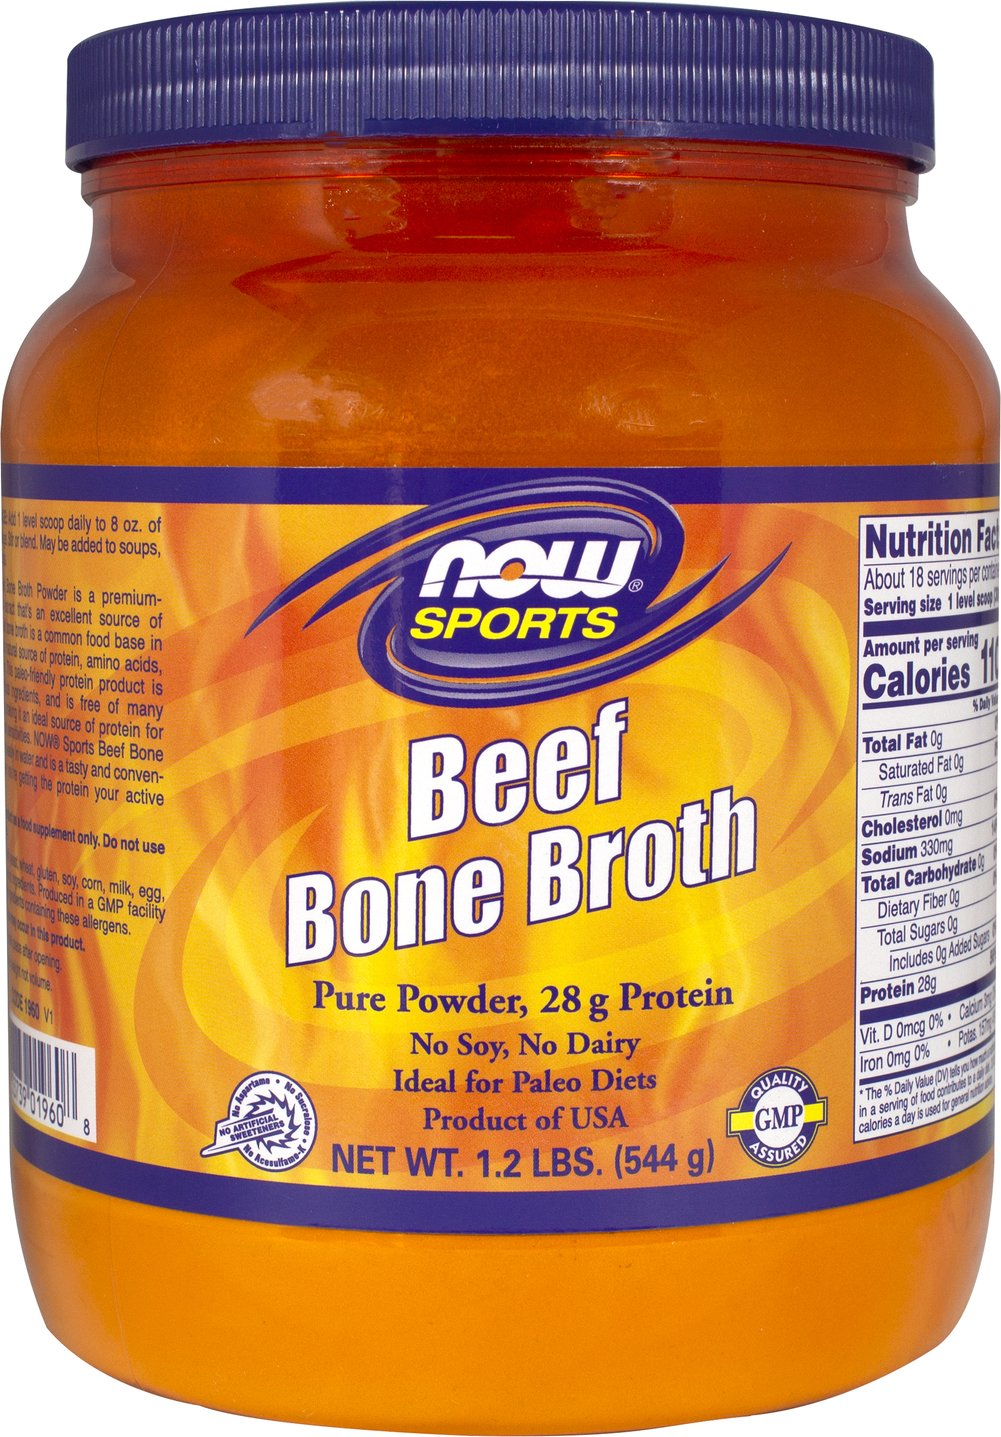 Beef Bone Broth Thumbnail Alternate Bottle View